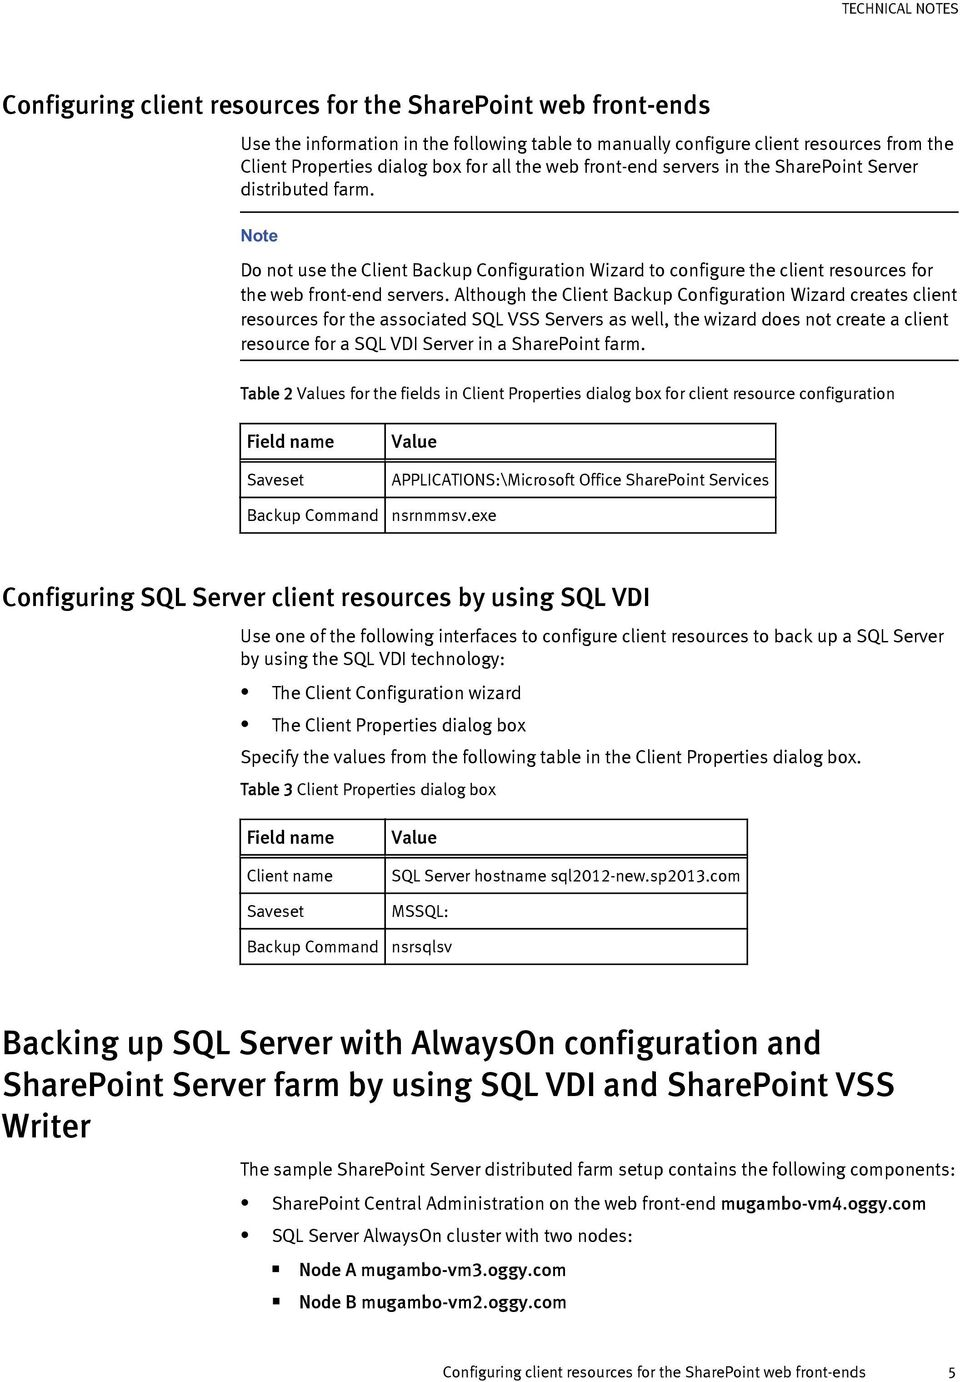 Although the Client Backup Configuration Wizard creates client resources for the associated SQL VSS Servers as well, the wizard does not create a client resource for a SQL VDI Server in a SharePoint